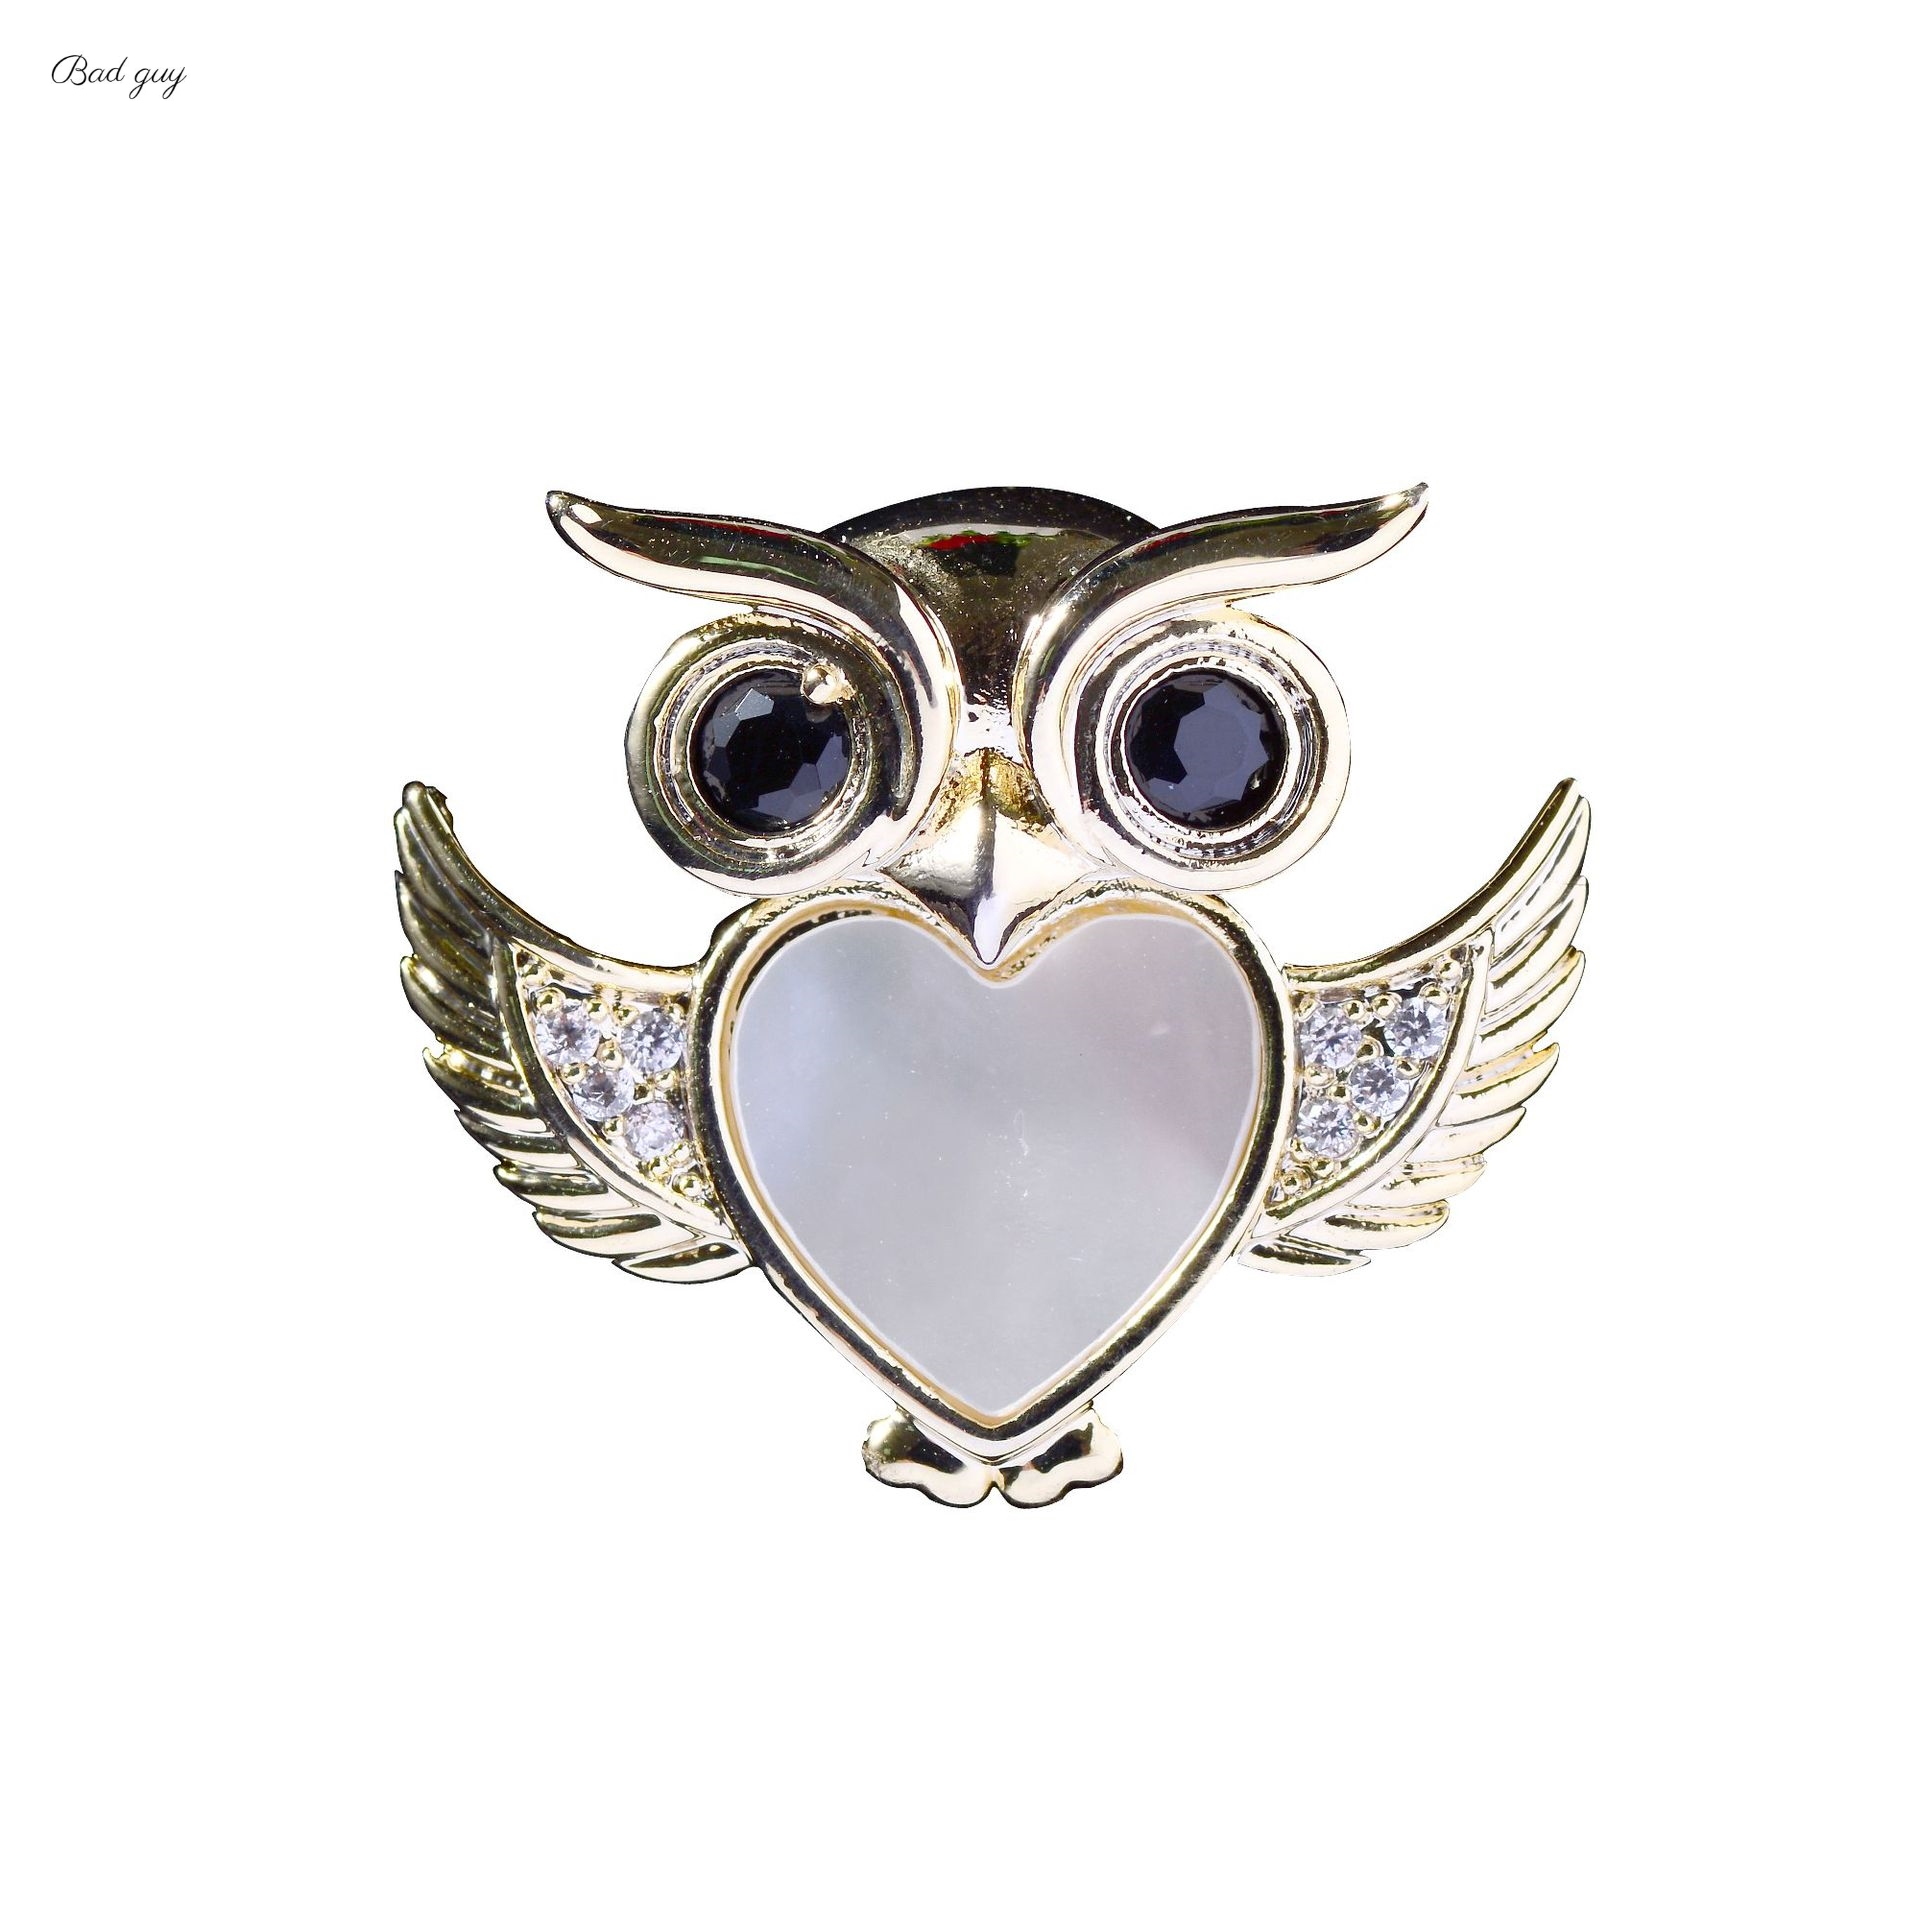 Bad Guy Zircon Brooches For Women Animal Party Causal Brooch Pin Gift Shirt Collar Pins Brooches for Women Accessories Brooch-0